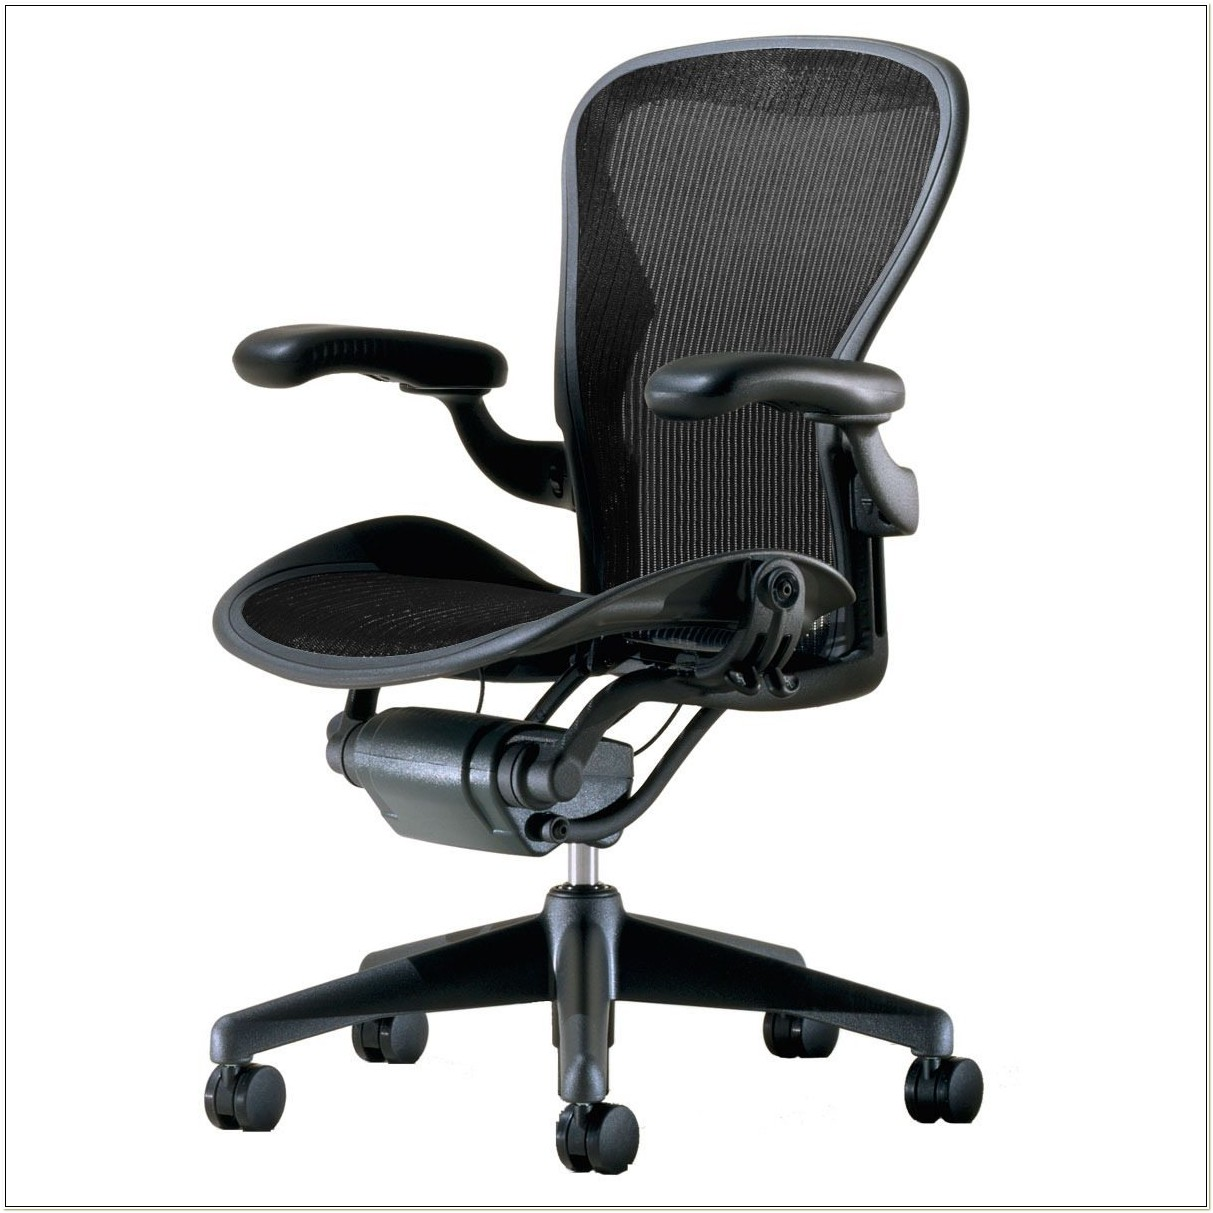 Top Rated Ergonomic Desk Chairs